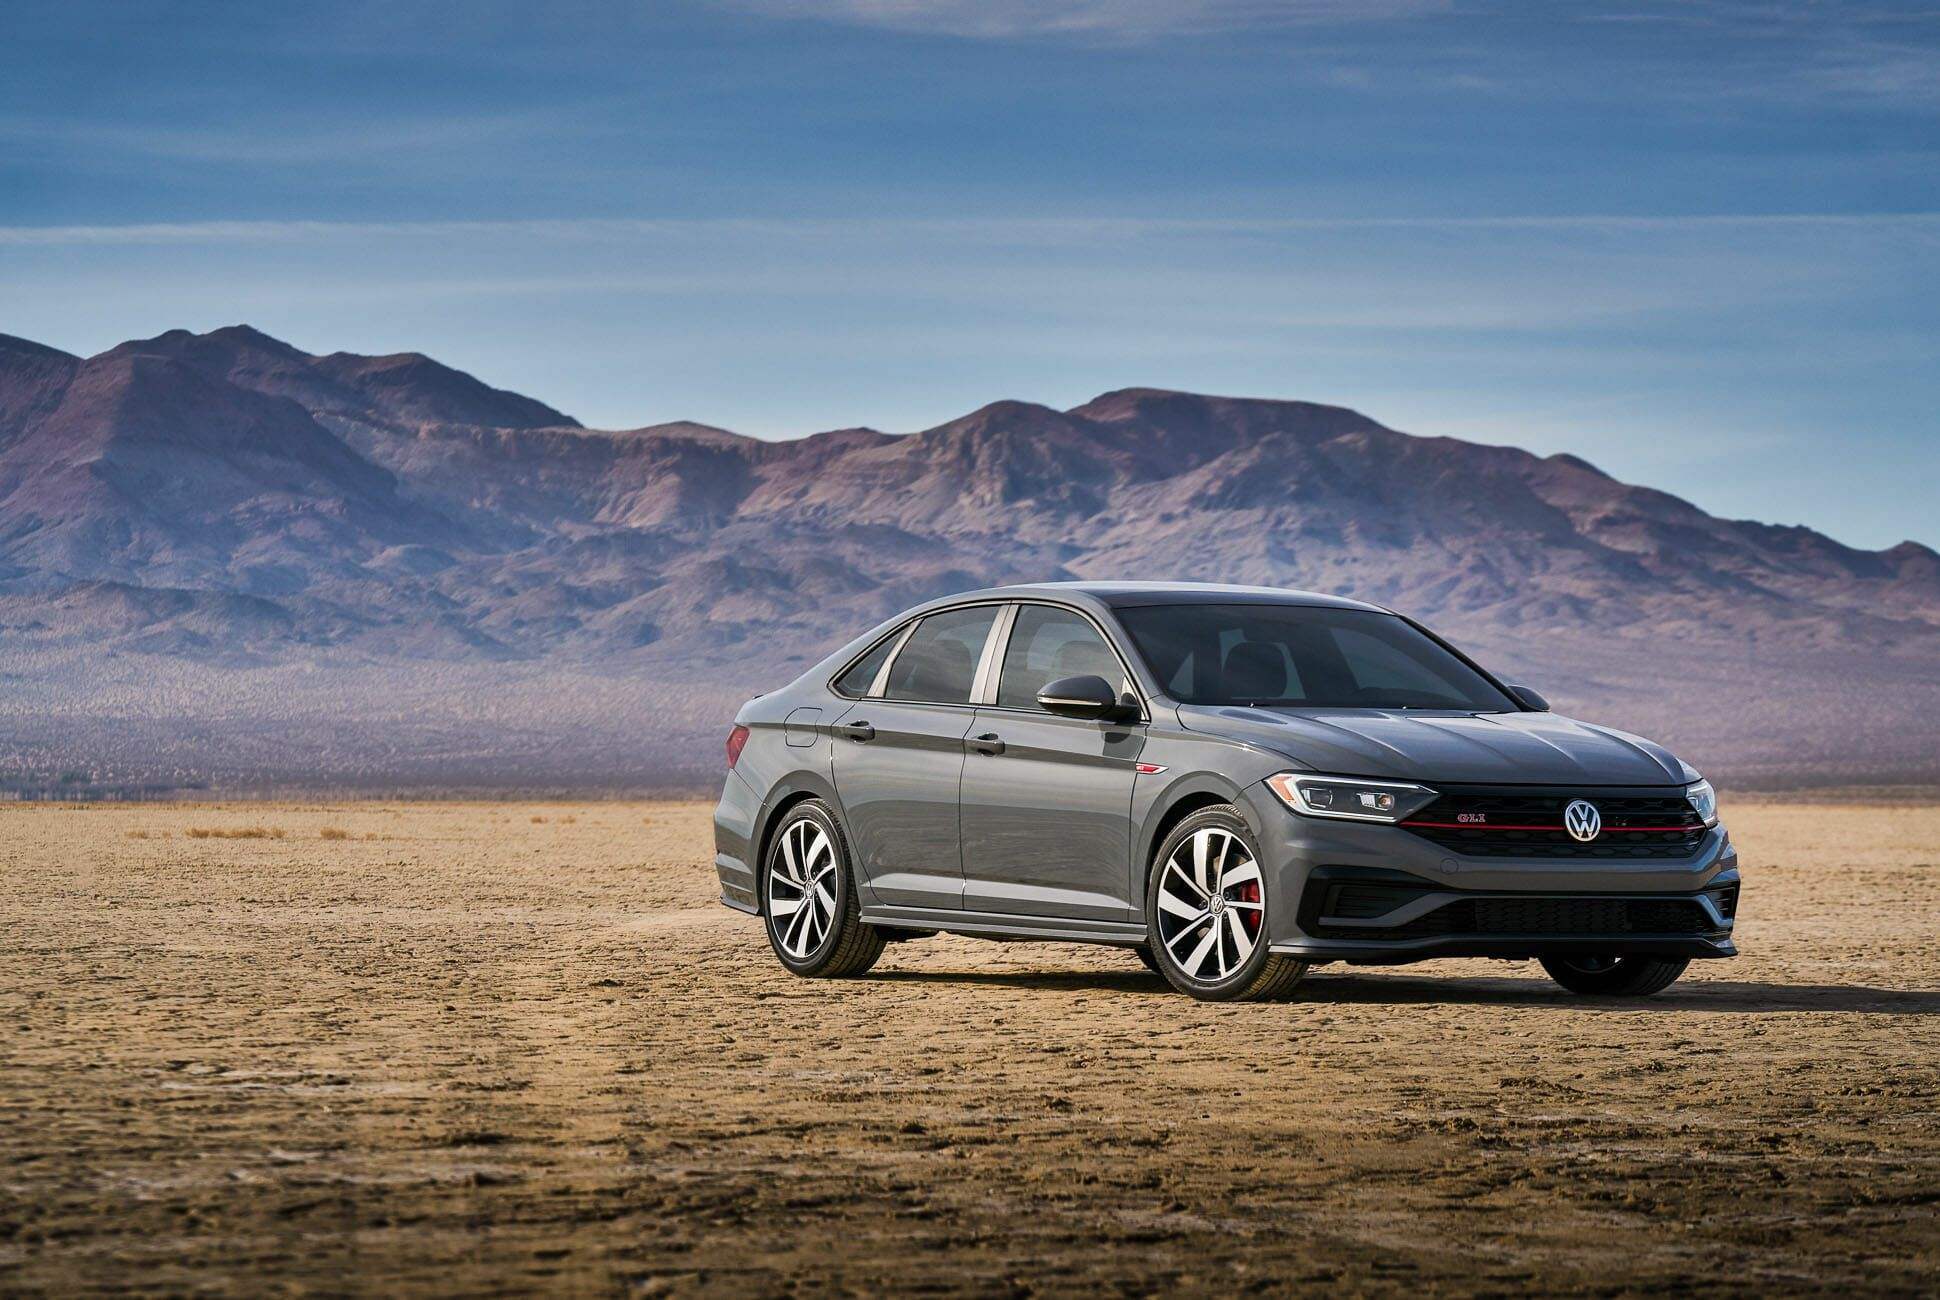 (Updated) The New Volkswagen GLI Brings Much Needed Soul to the Practical Sedan